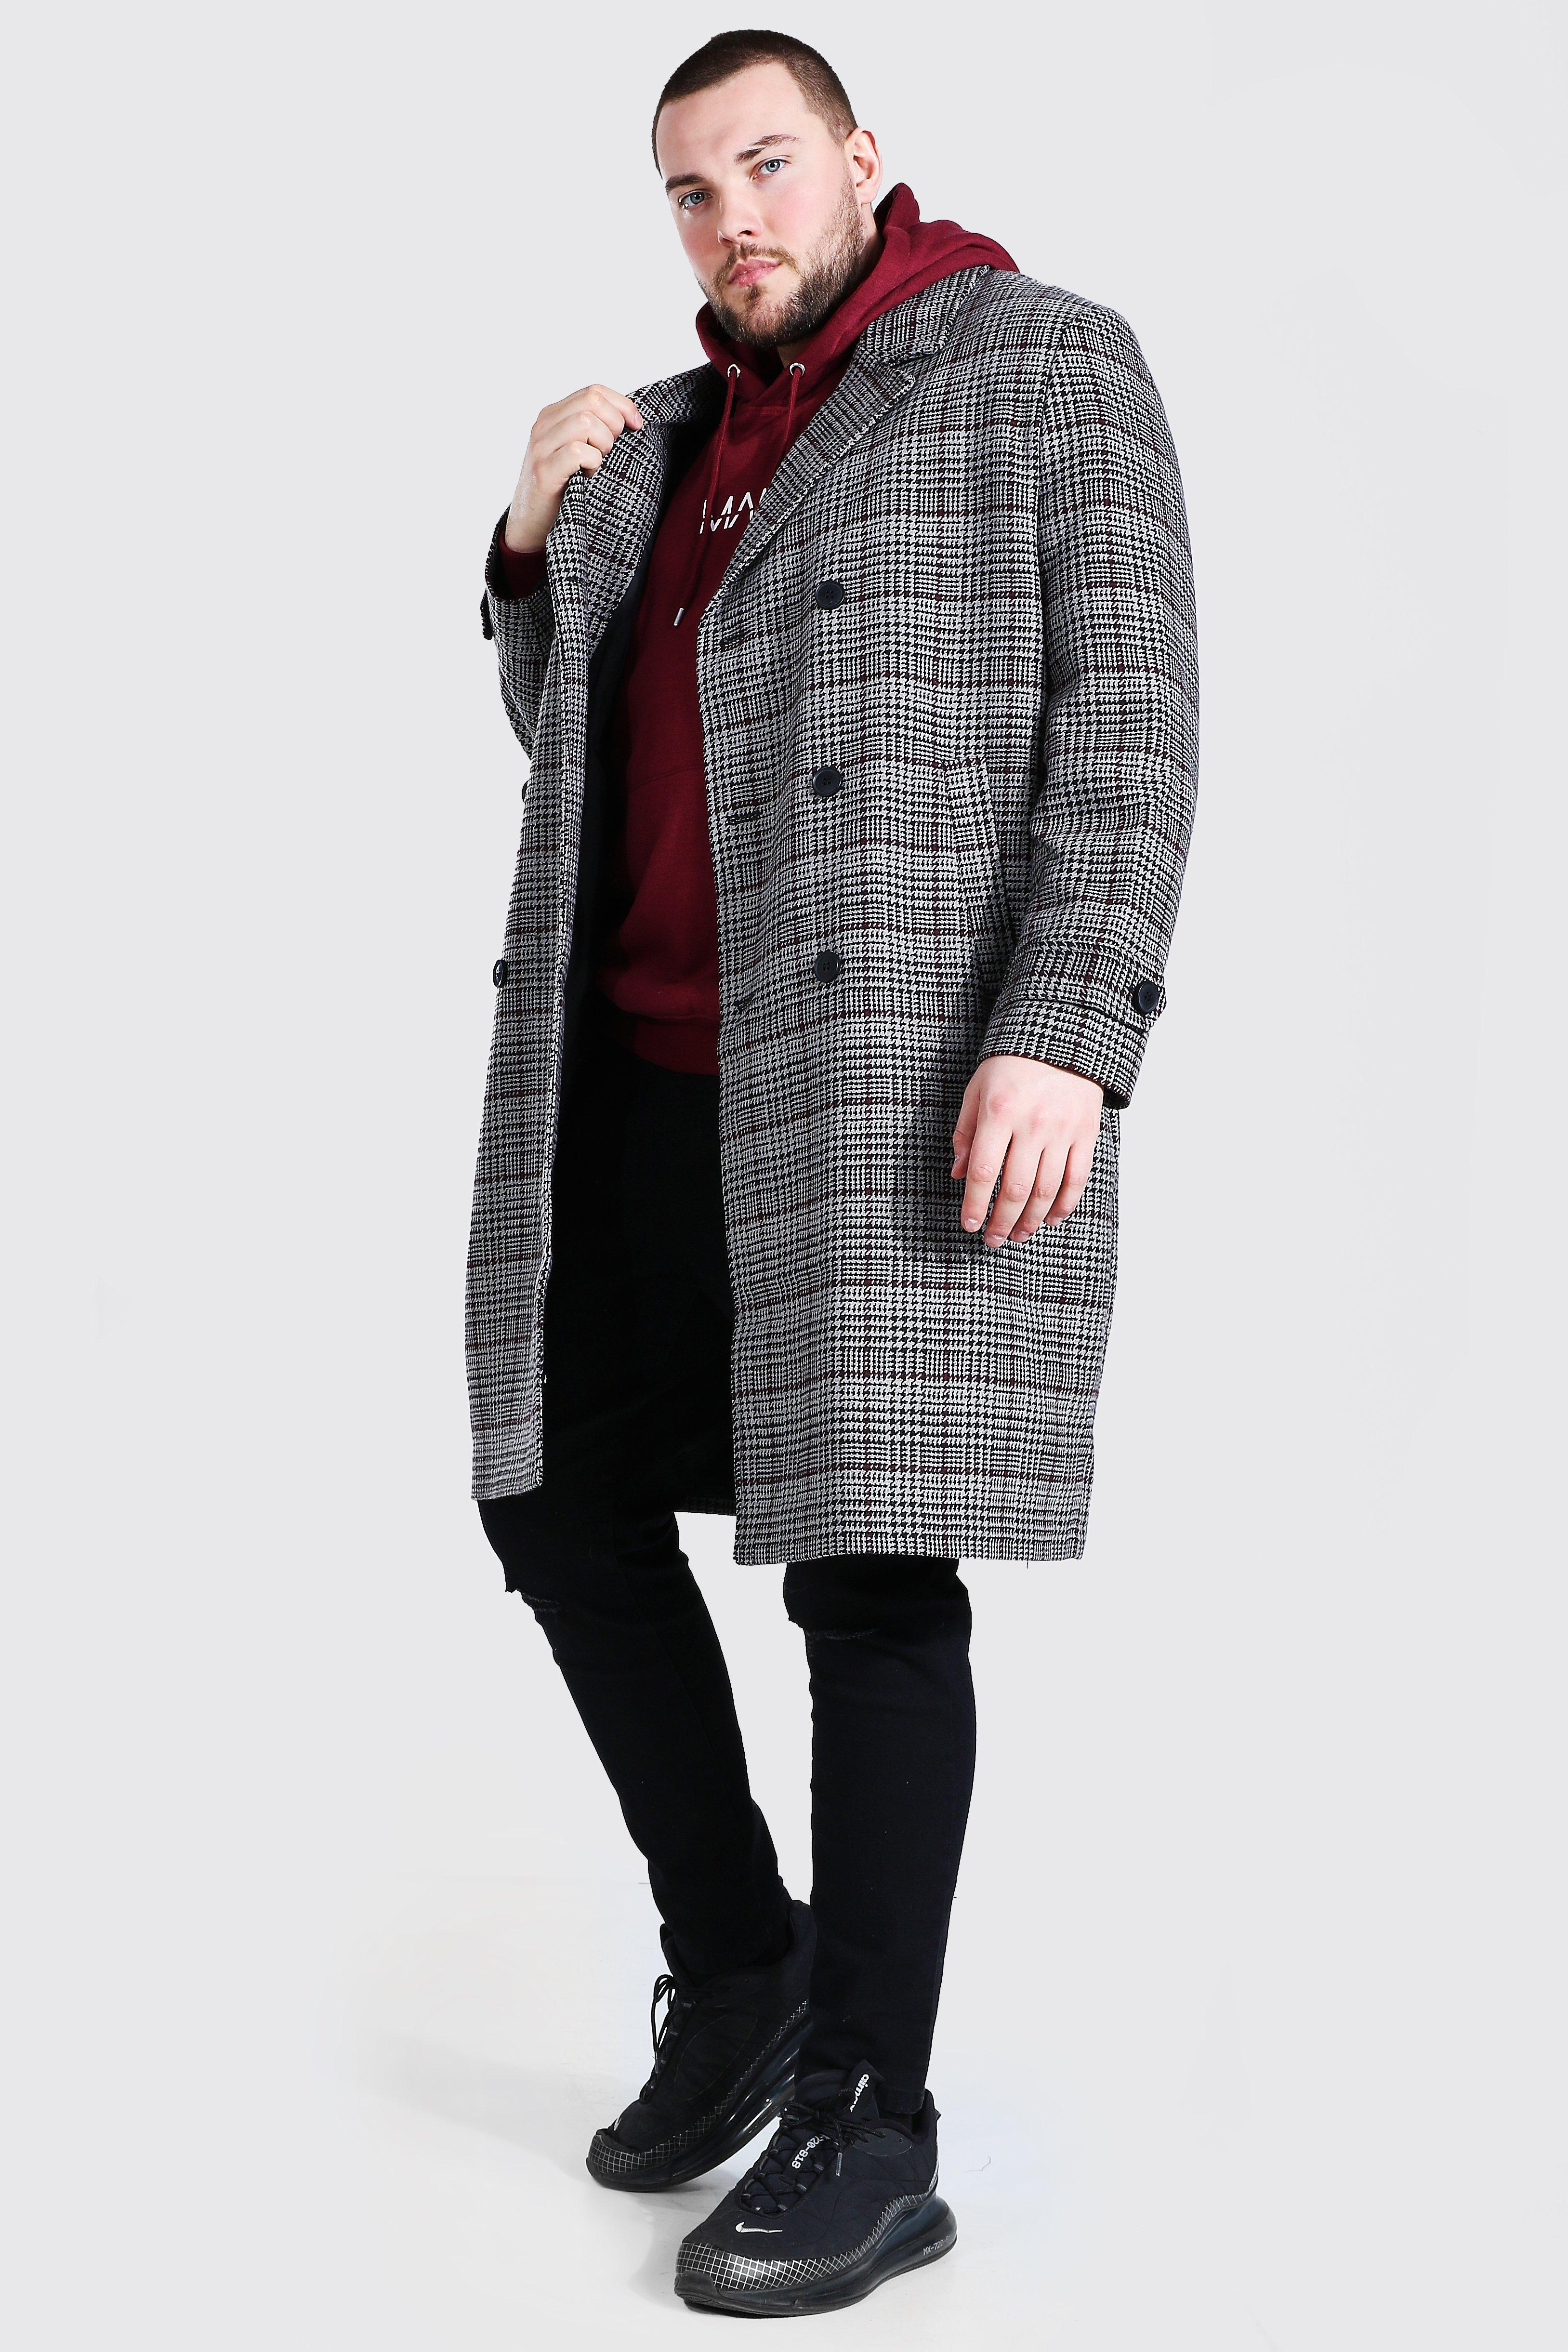 Men's Vintage Jackets & Coats Mens Plus Size Grid Flannel Double Breasted Overcoat - Grey $48.00 AT vintagedancer.com